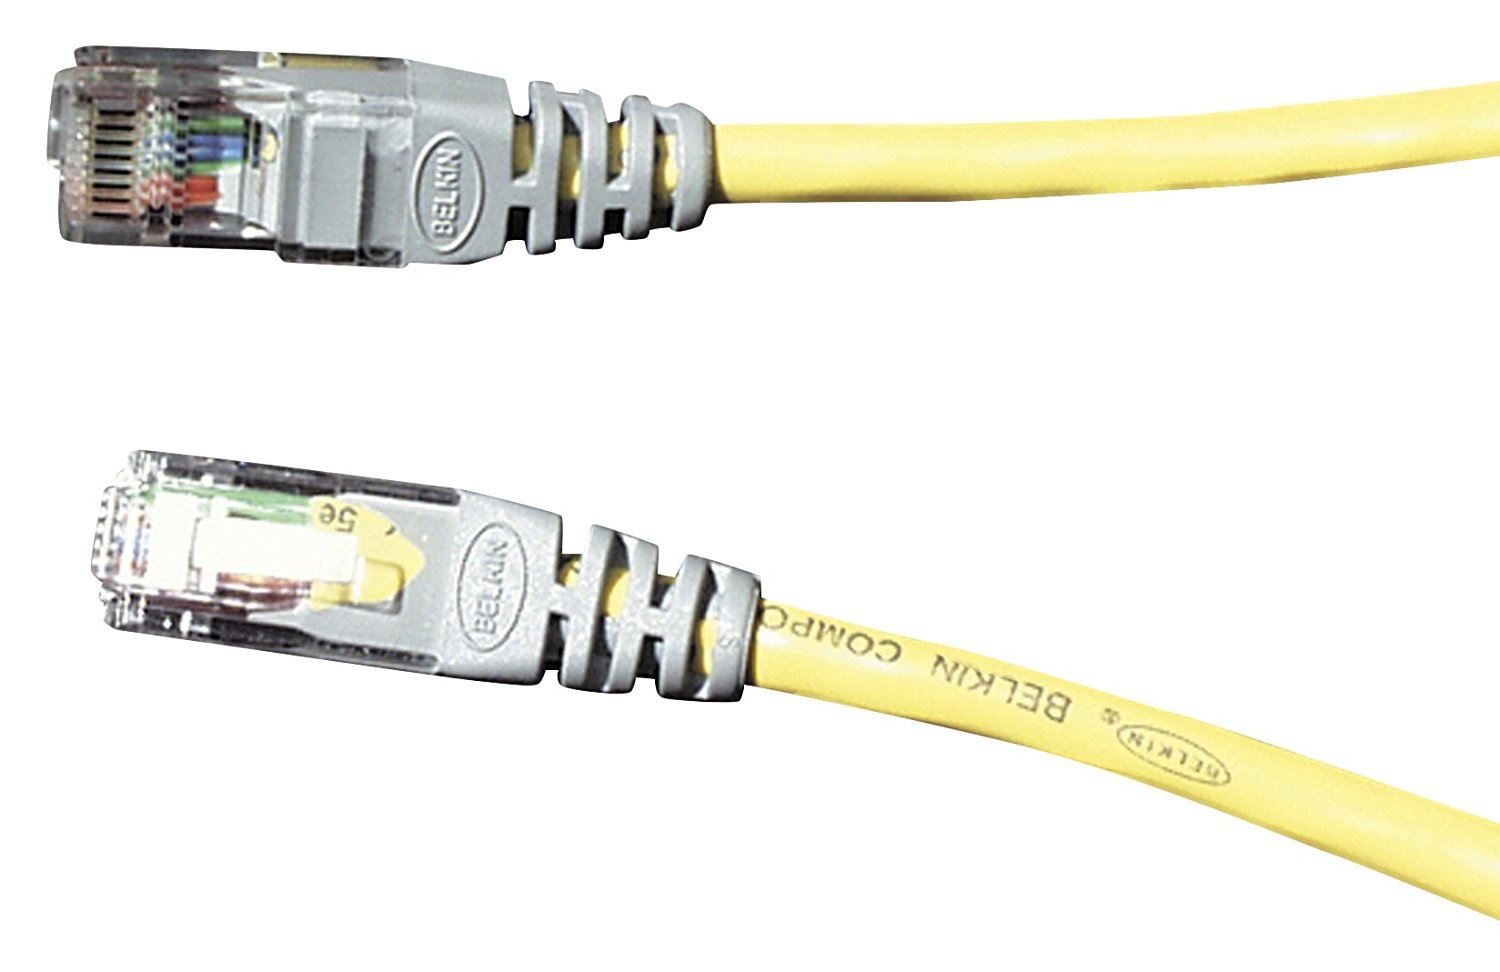 Cables To Go 1m Cat6 Snagless Crossover Utp Patch Cable Grey